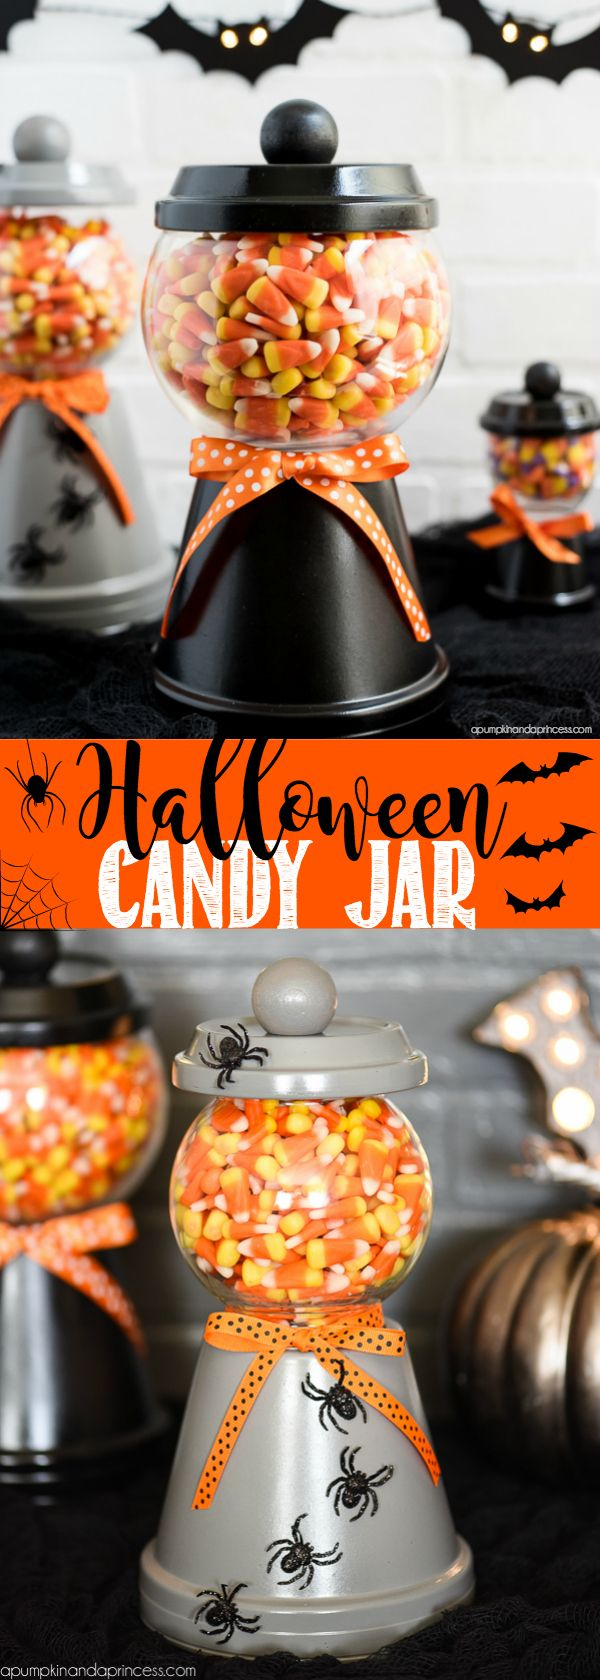 how to make a halloween candy jar made out of a terra cotta pot saucer a glass bowl and wooden knob perfect for decorating and displaying your favorite - Candy Corn Halloween Decorations